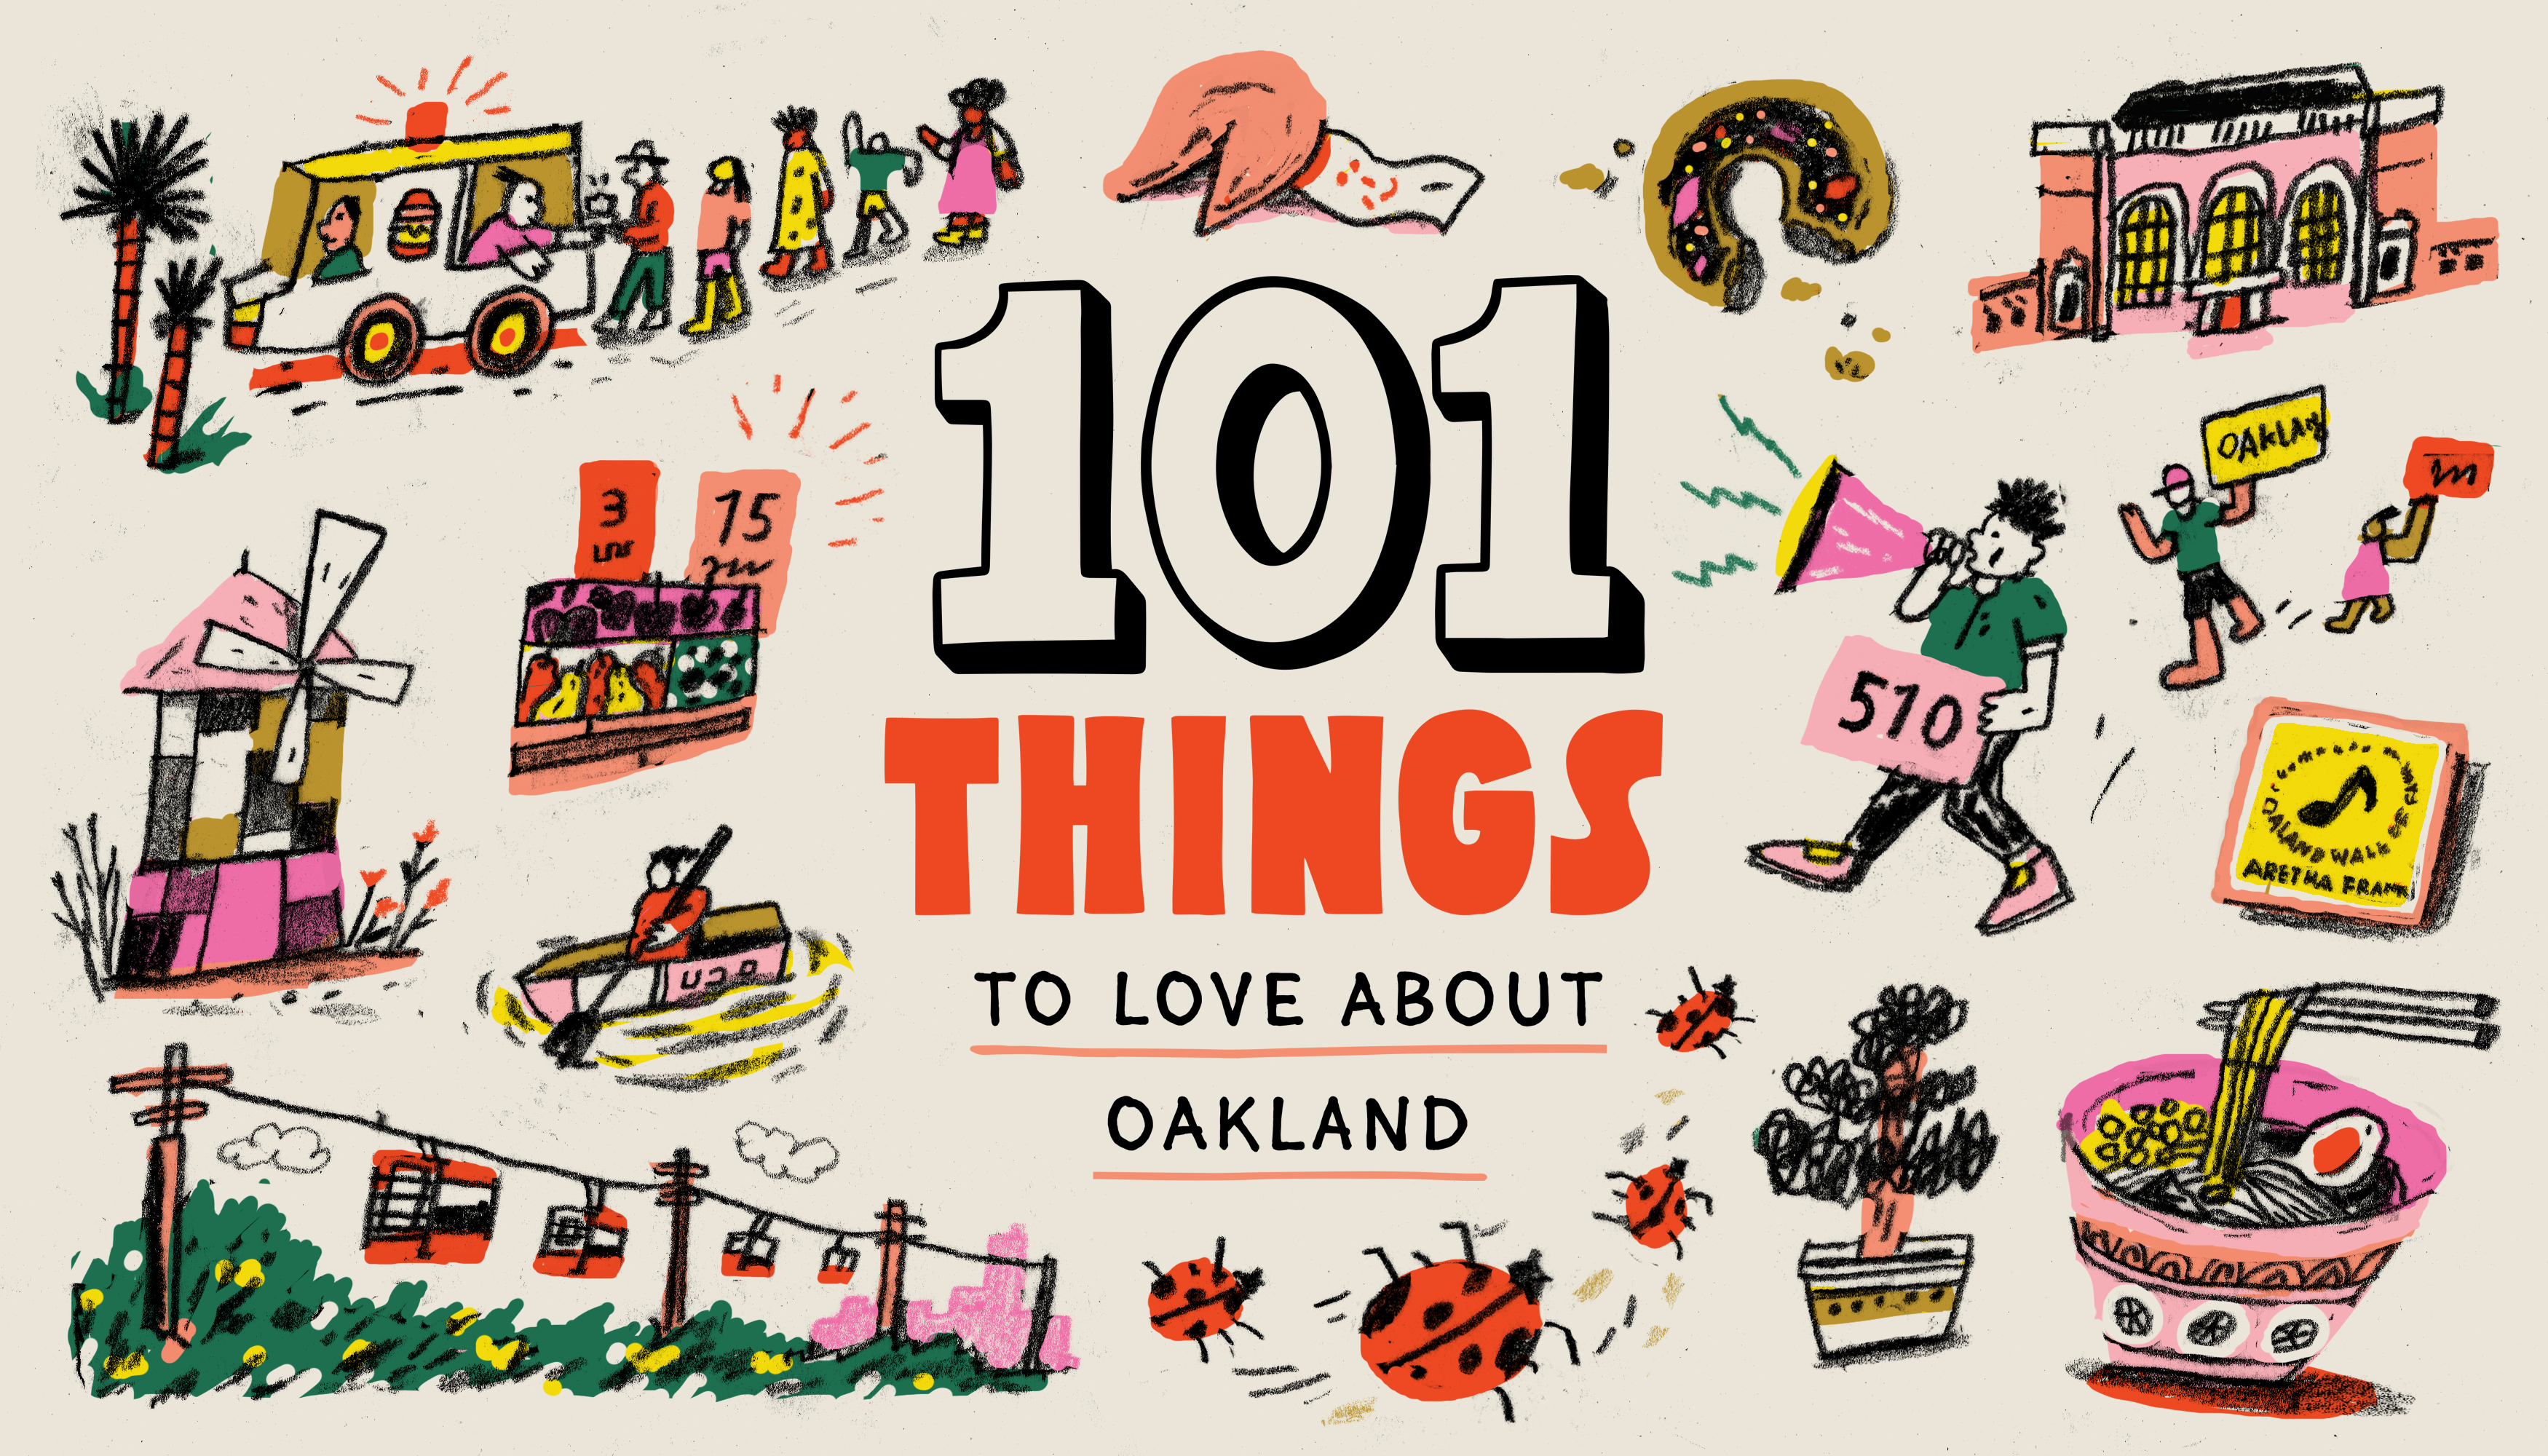 A collection of Oakland themed illustrations including ramen, a fortune cookie, and ladybugs.